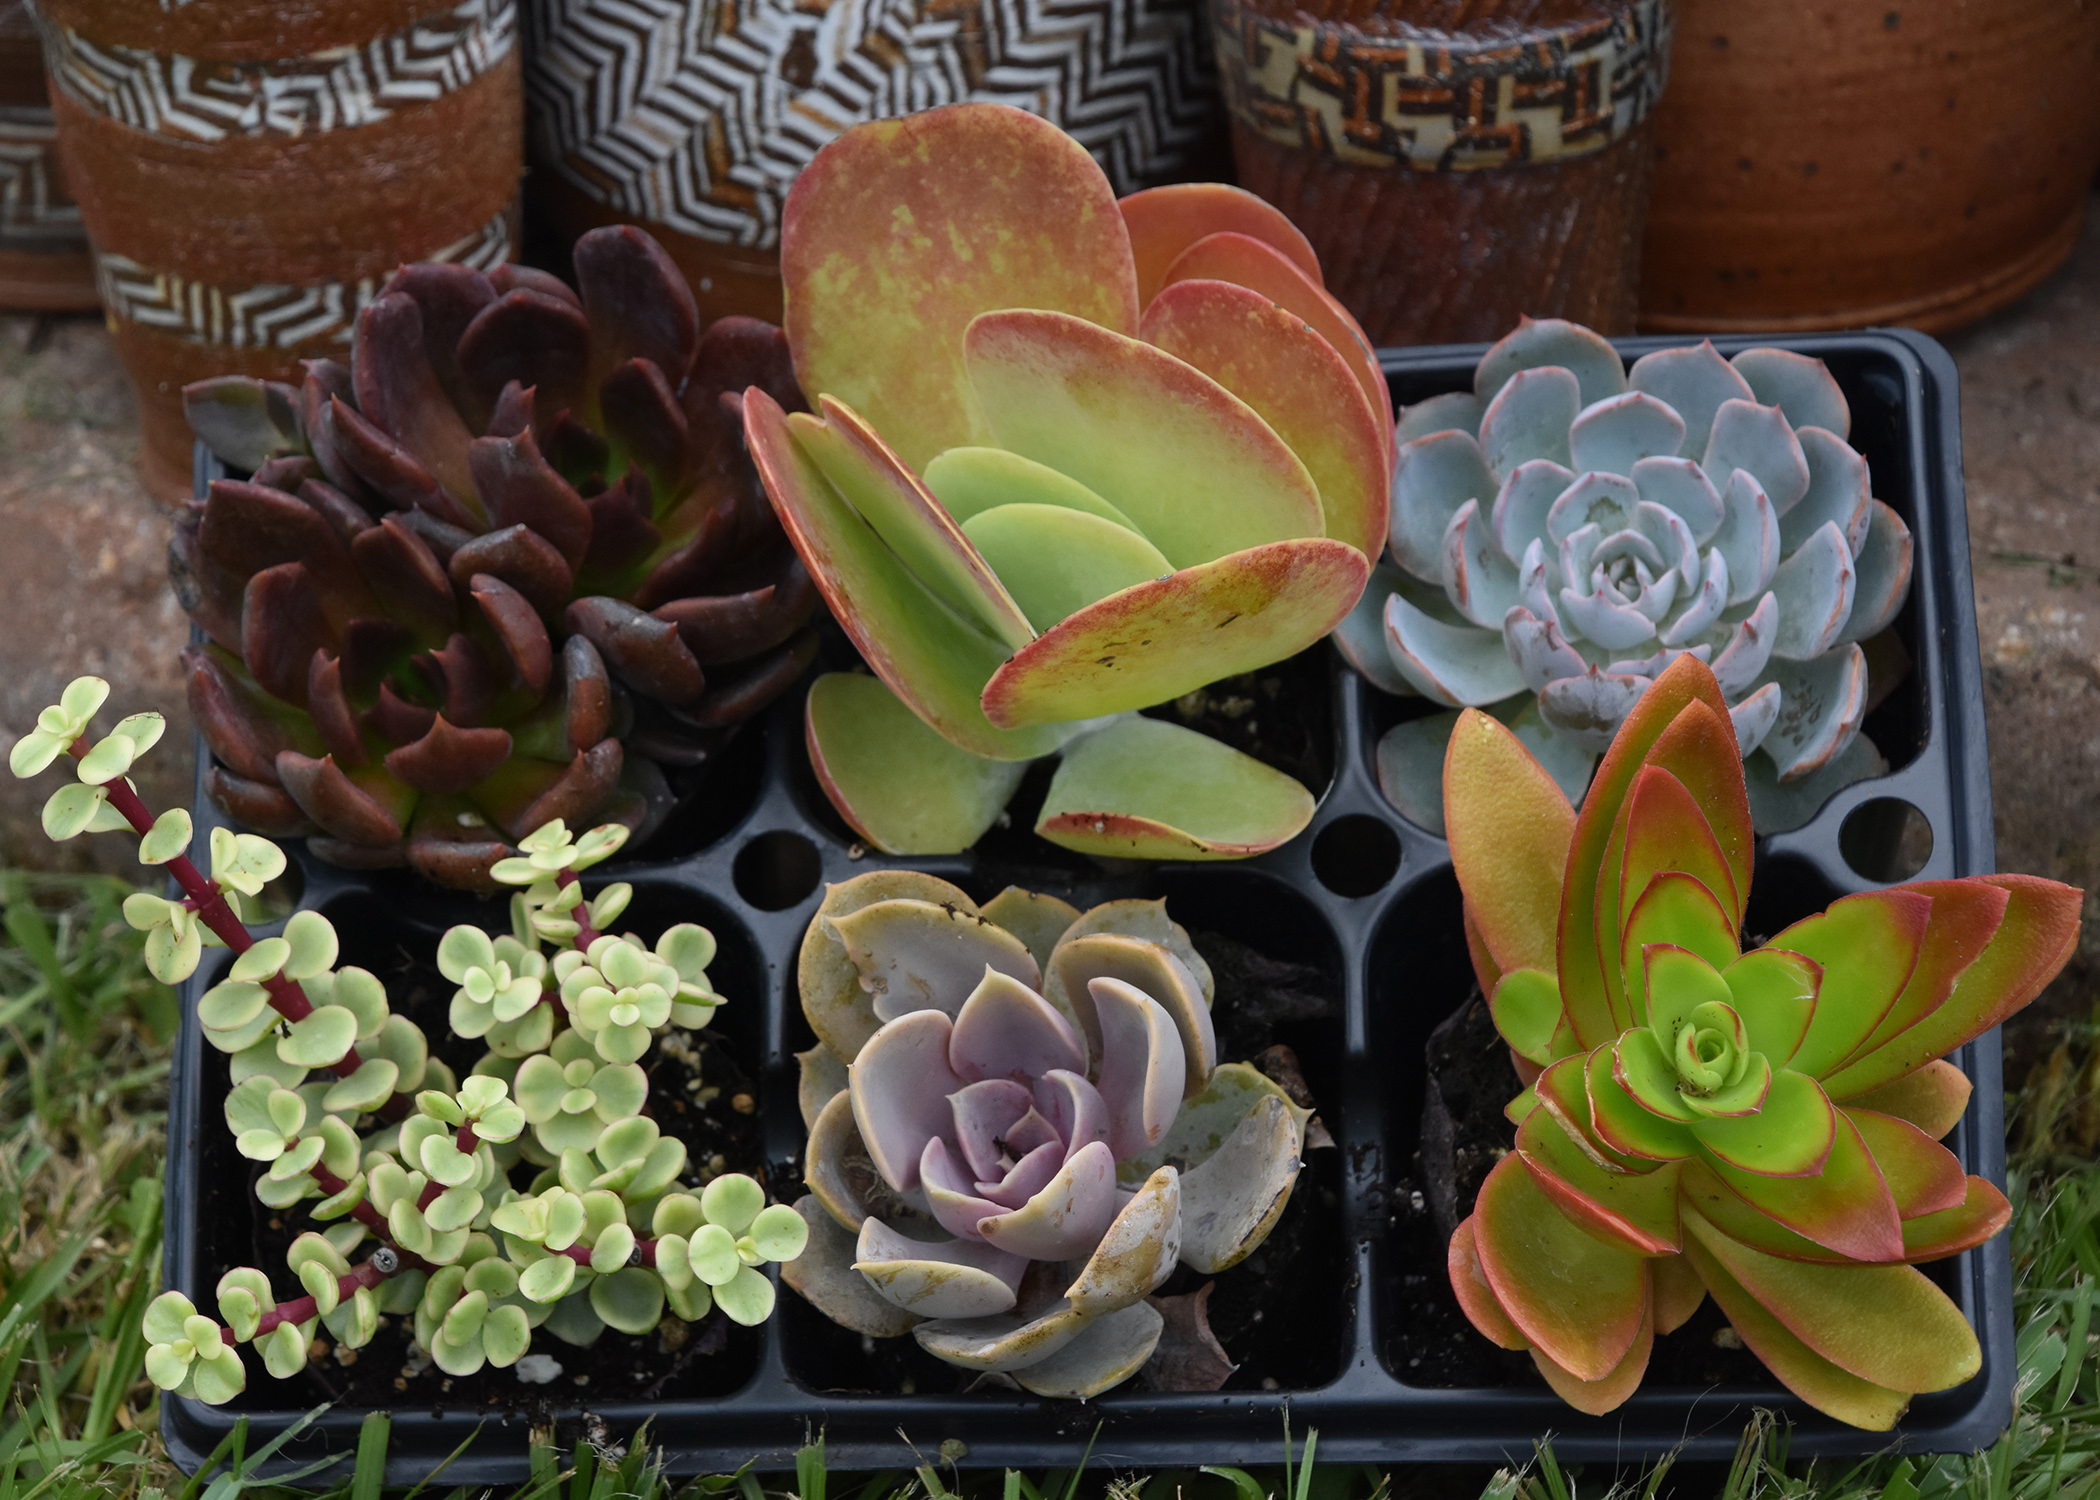 Succulents Plants With Soft Juicy Leaves And Stems Are Good Choices For Low